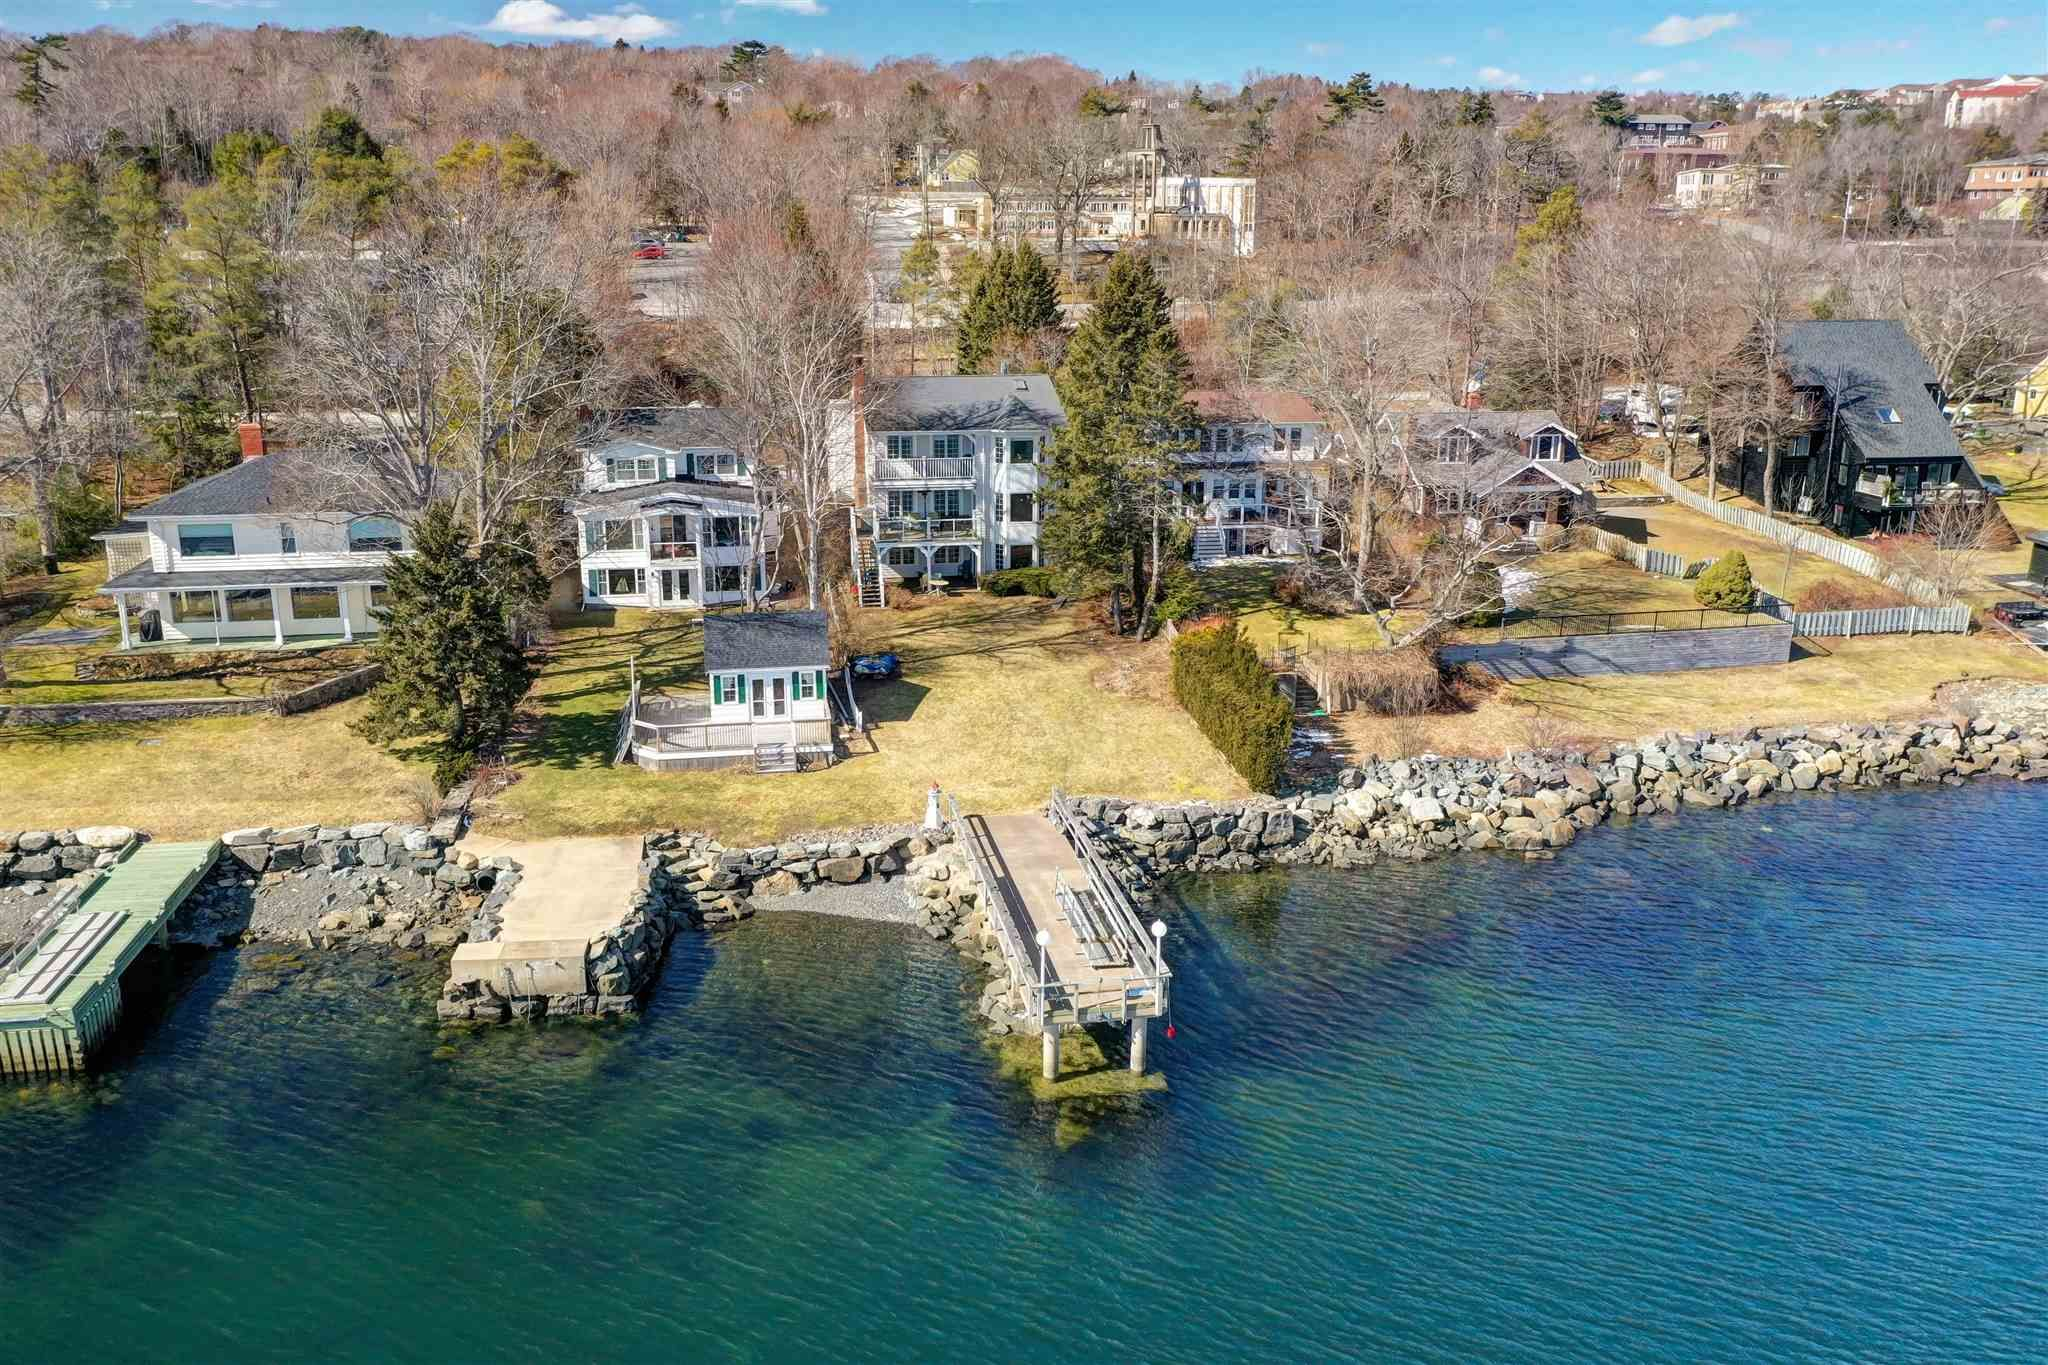 Main Photo: 115 Shore Drive in Bedford: 20-Bedford Residential for sale (Halifax-Dartmouth)  : MLS®# 202111071